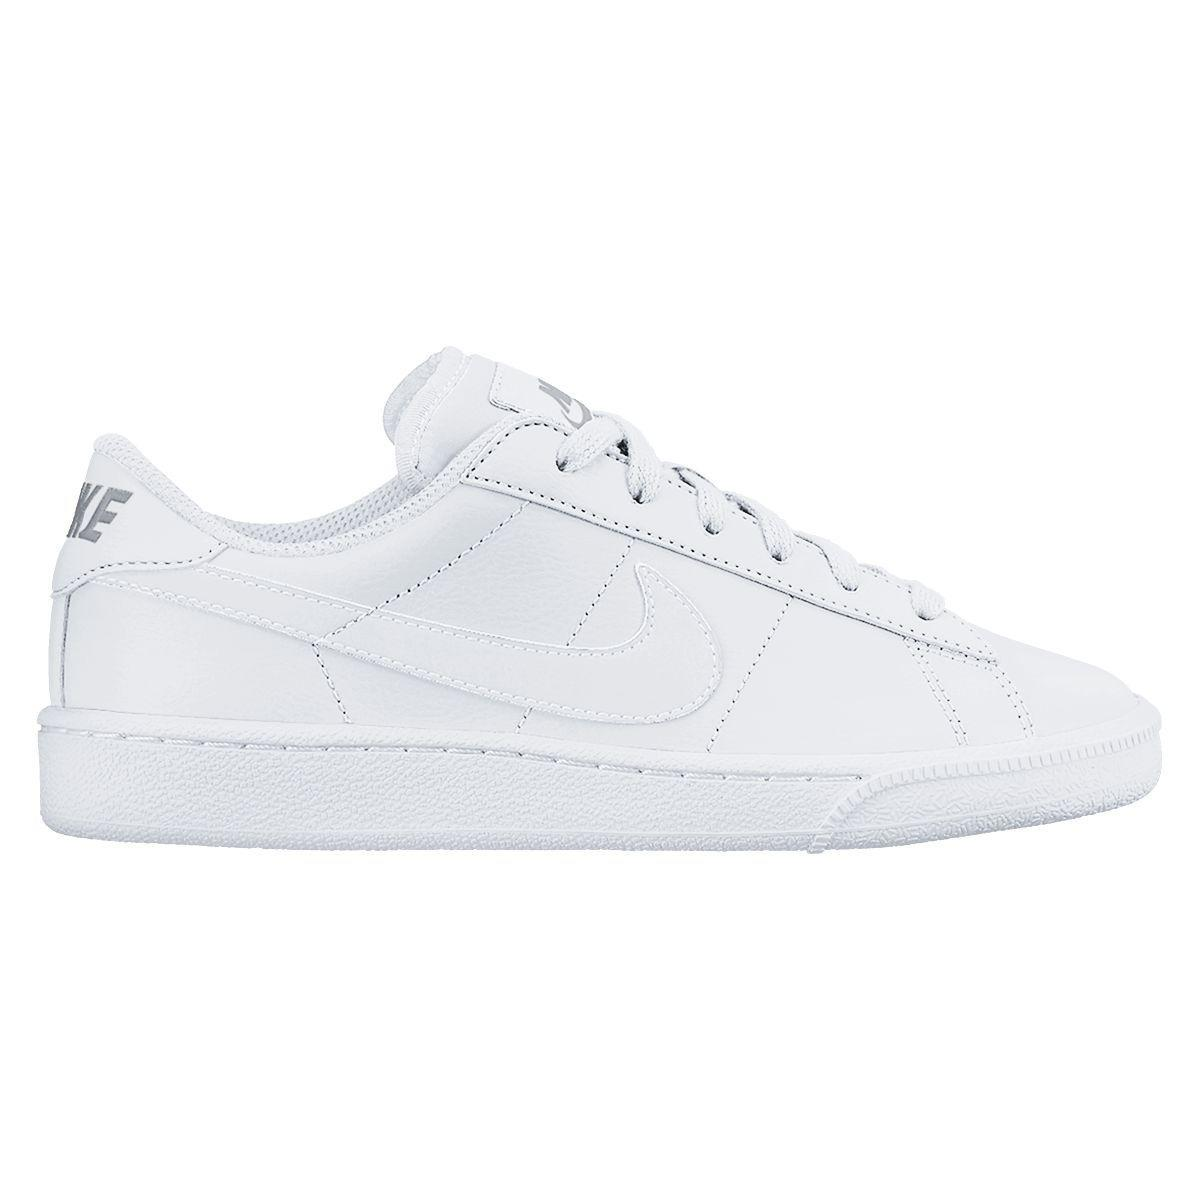 Nike Classic Leather Tennis Shoes